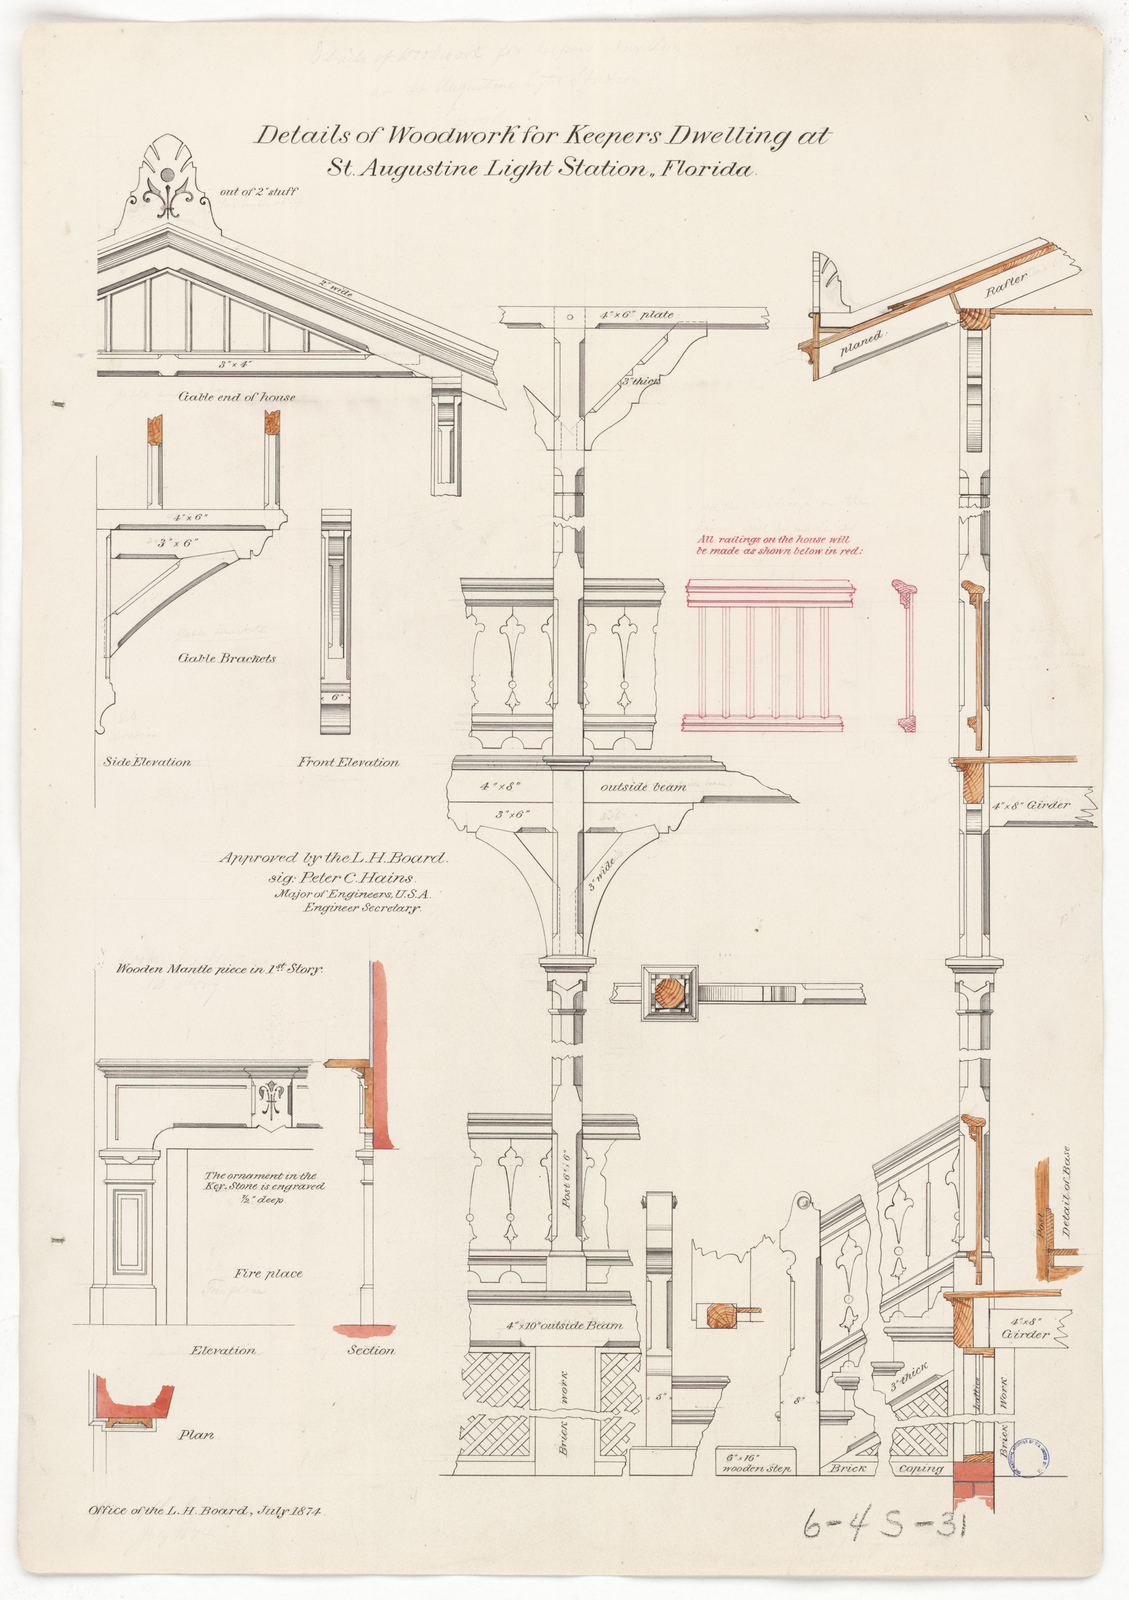 Drawing Showing Woodwork Details for the Lighthouse Dwelling at Saint  Augustine, Florida